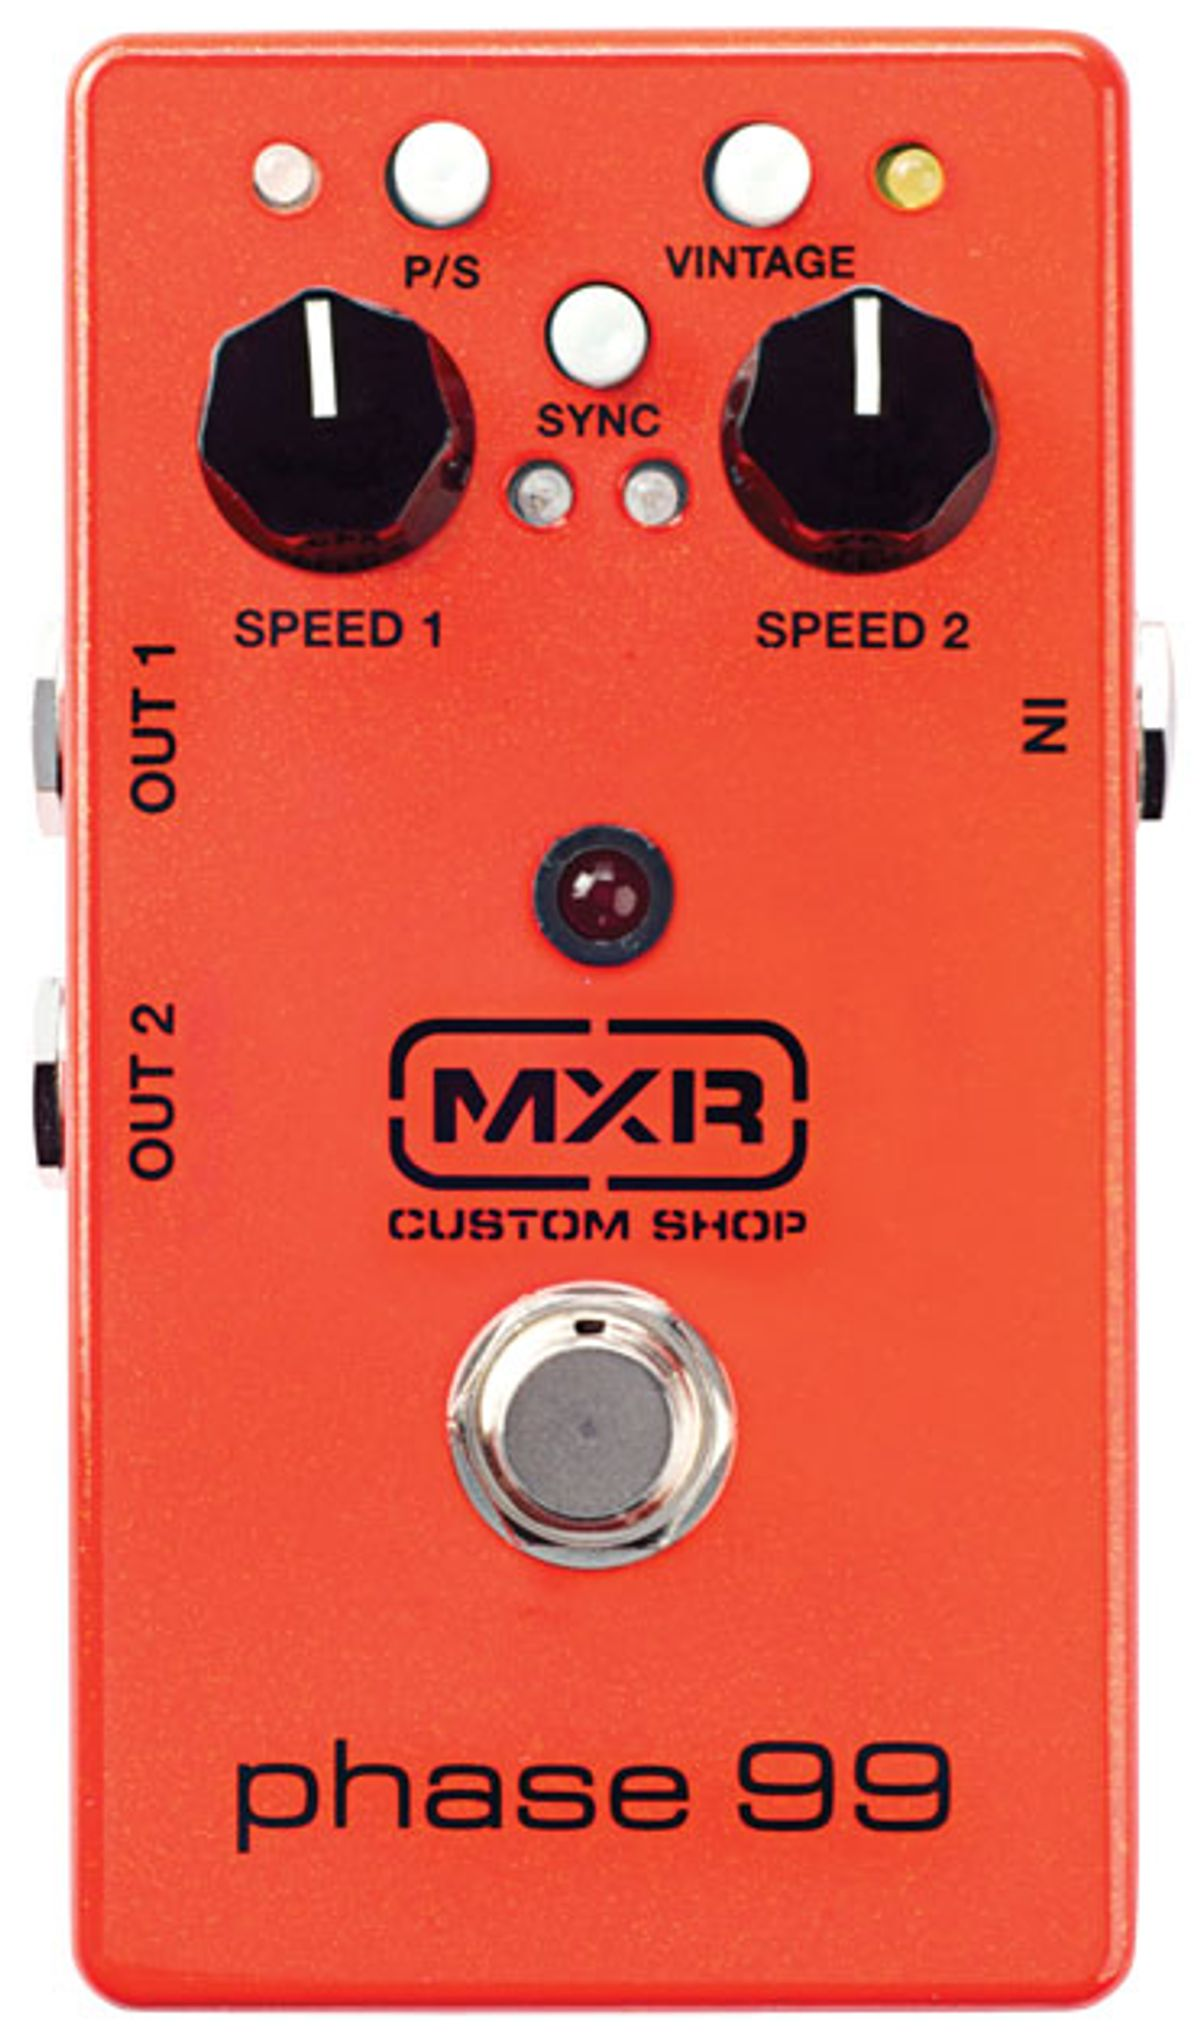 MXR Custom Shop Phase 99 Review